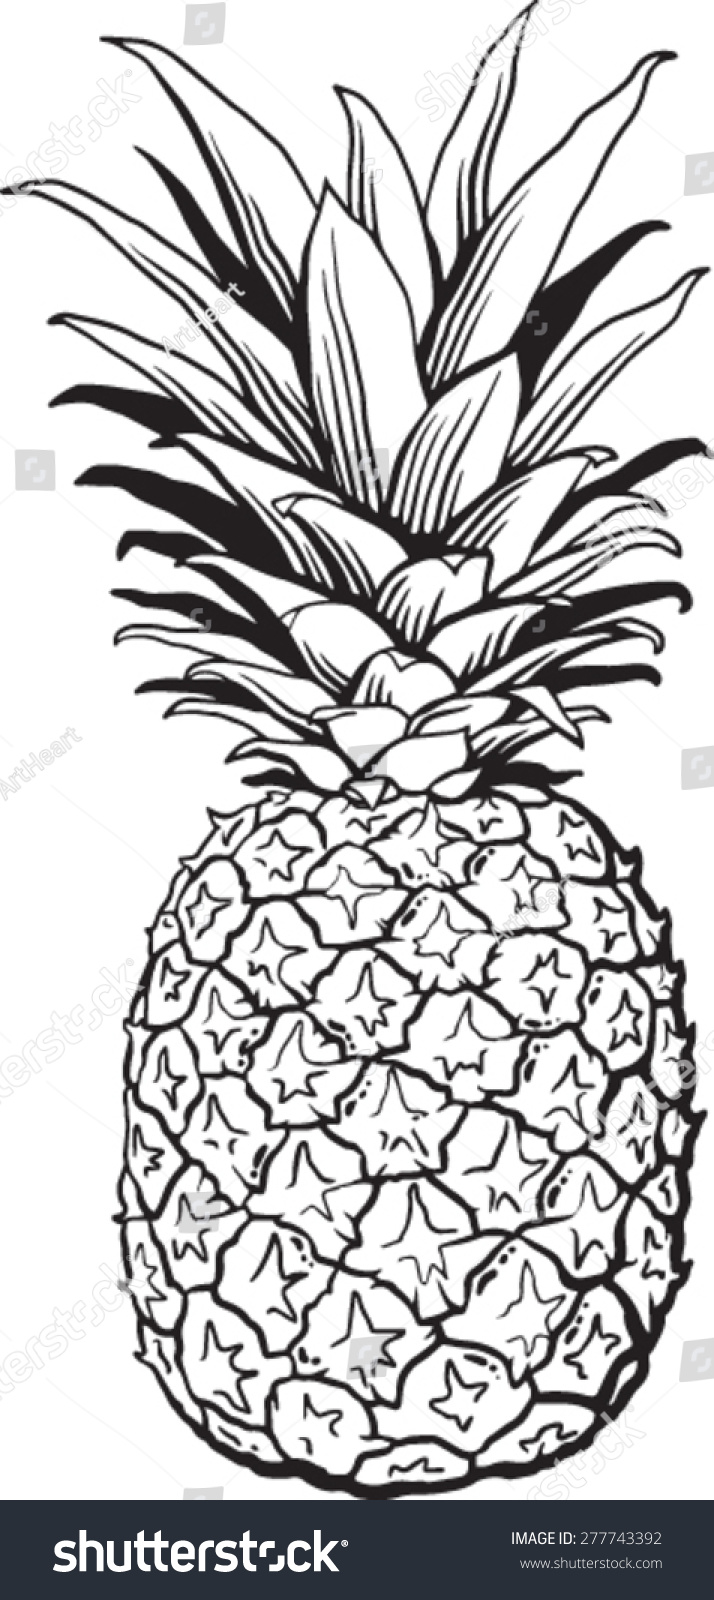 Line Quality In Art : Line drawing of pineapple pixshark images